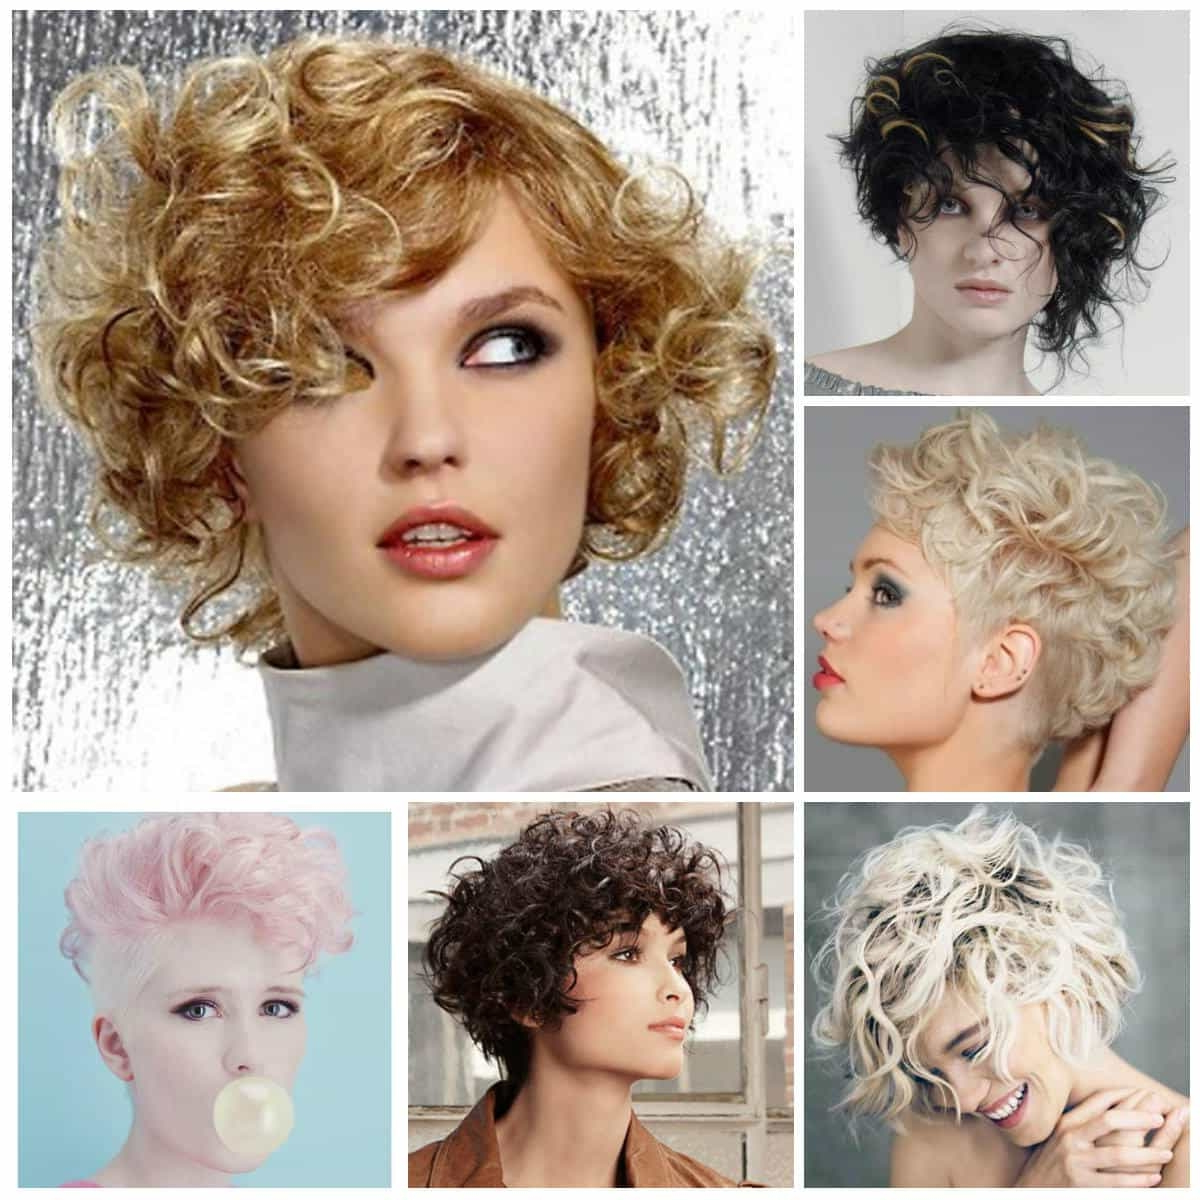 Short Curly Haircuts For Long Faces – Short And Cuts Hairstyles With Regard To Curly Short Hairstyles For Oval Faces (View 18 of 25)